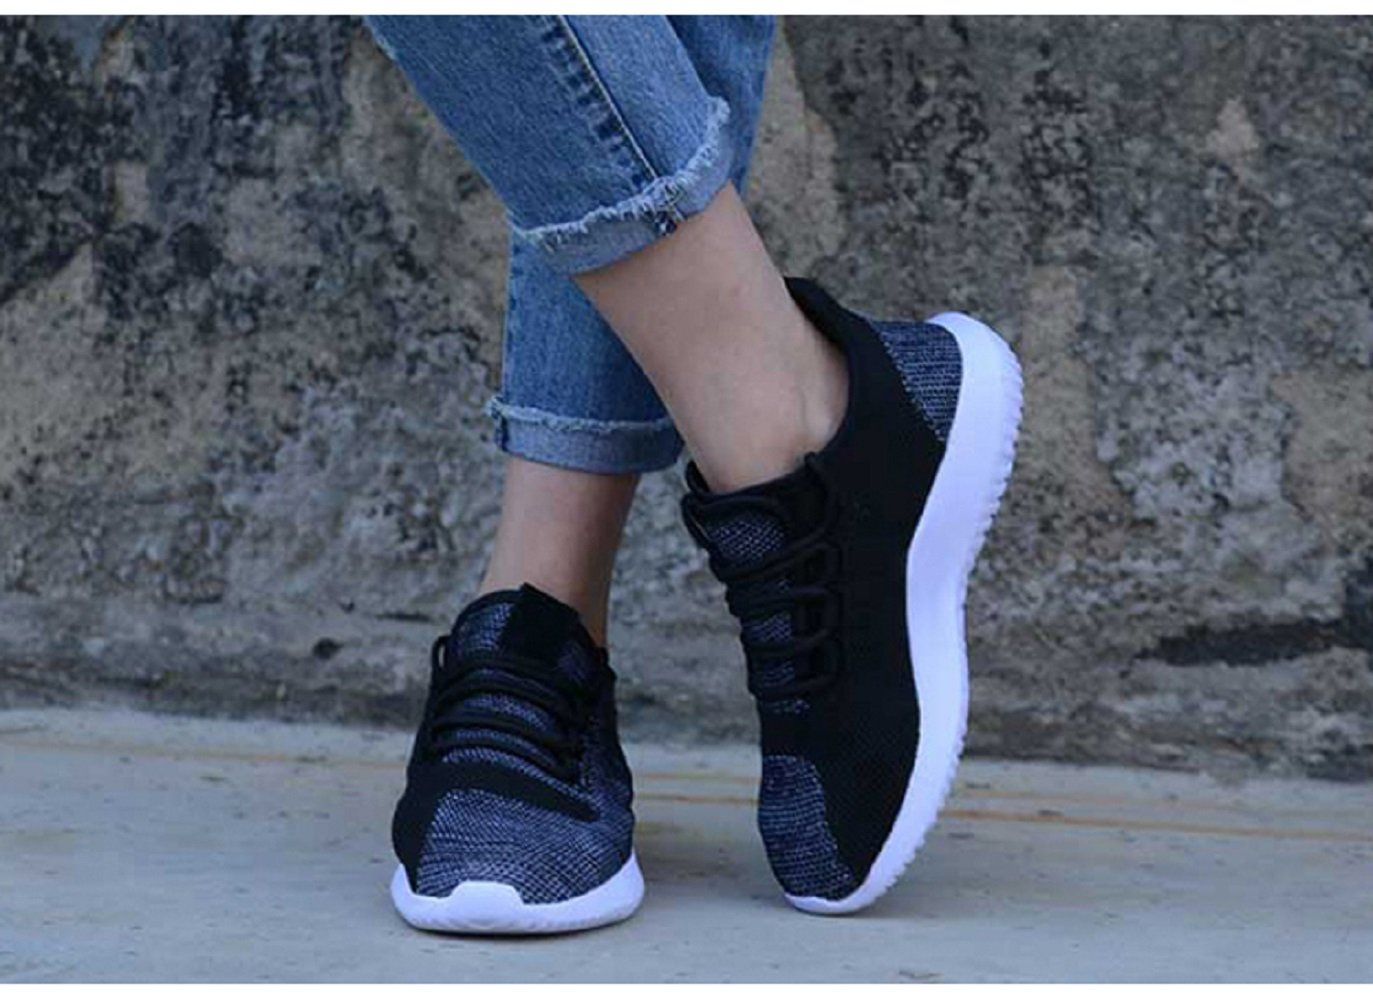 GAOAG Sneakers Running Cushioning Lightweight Breathable Casual Shoes Unisex by GAOAG (Image #5)